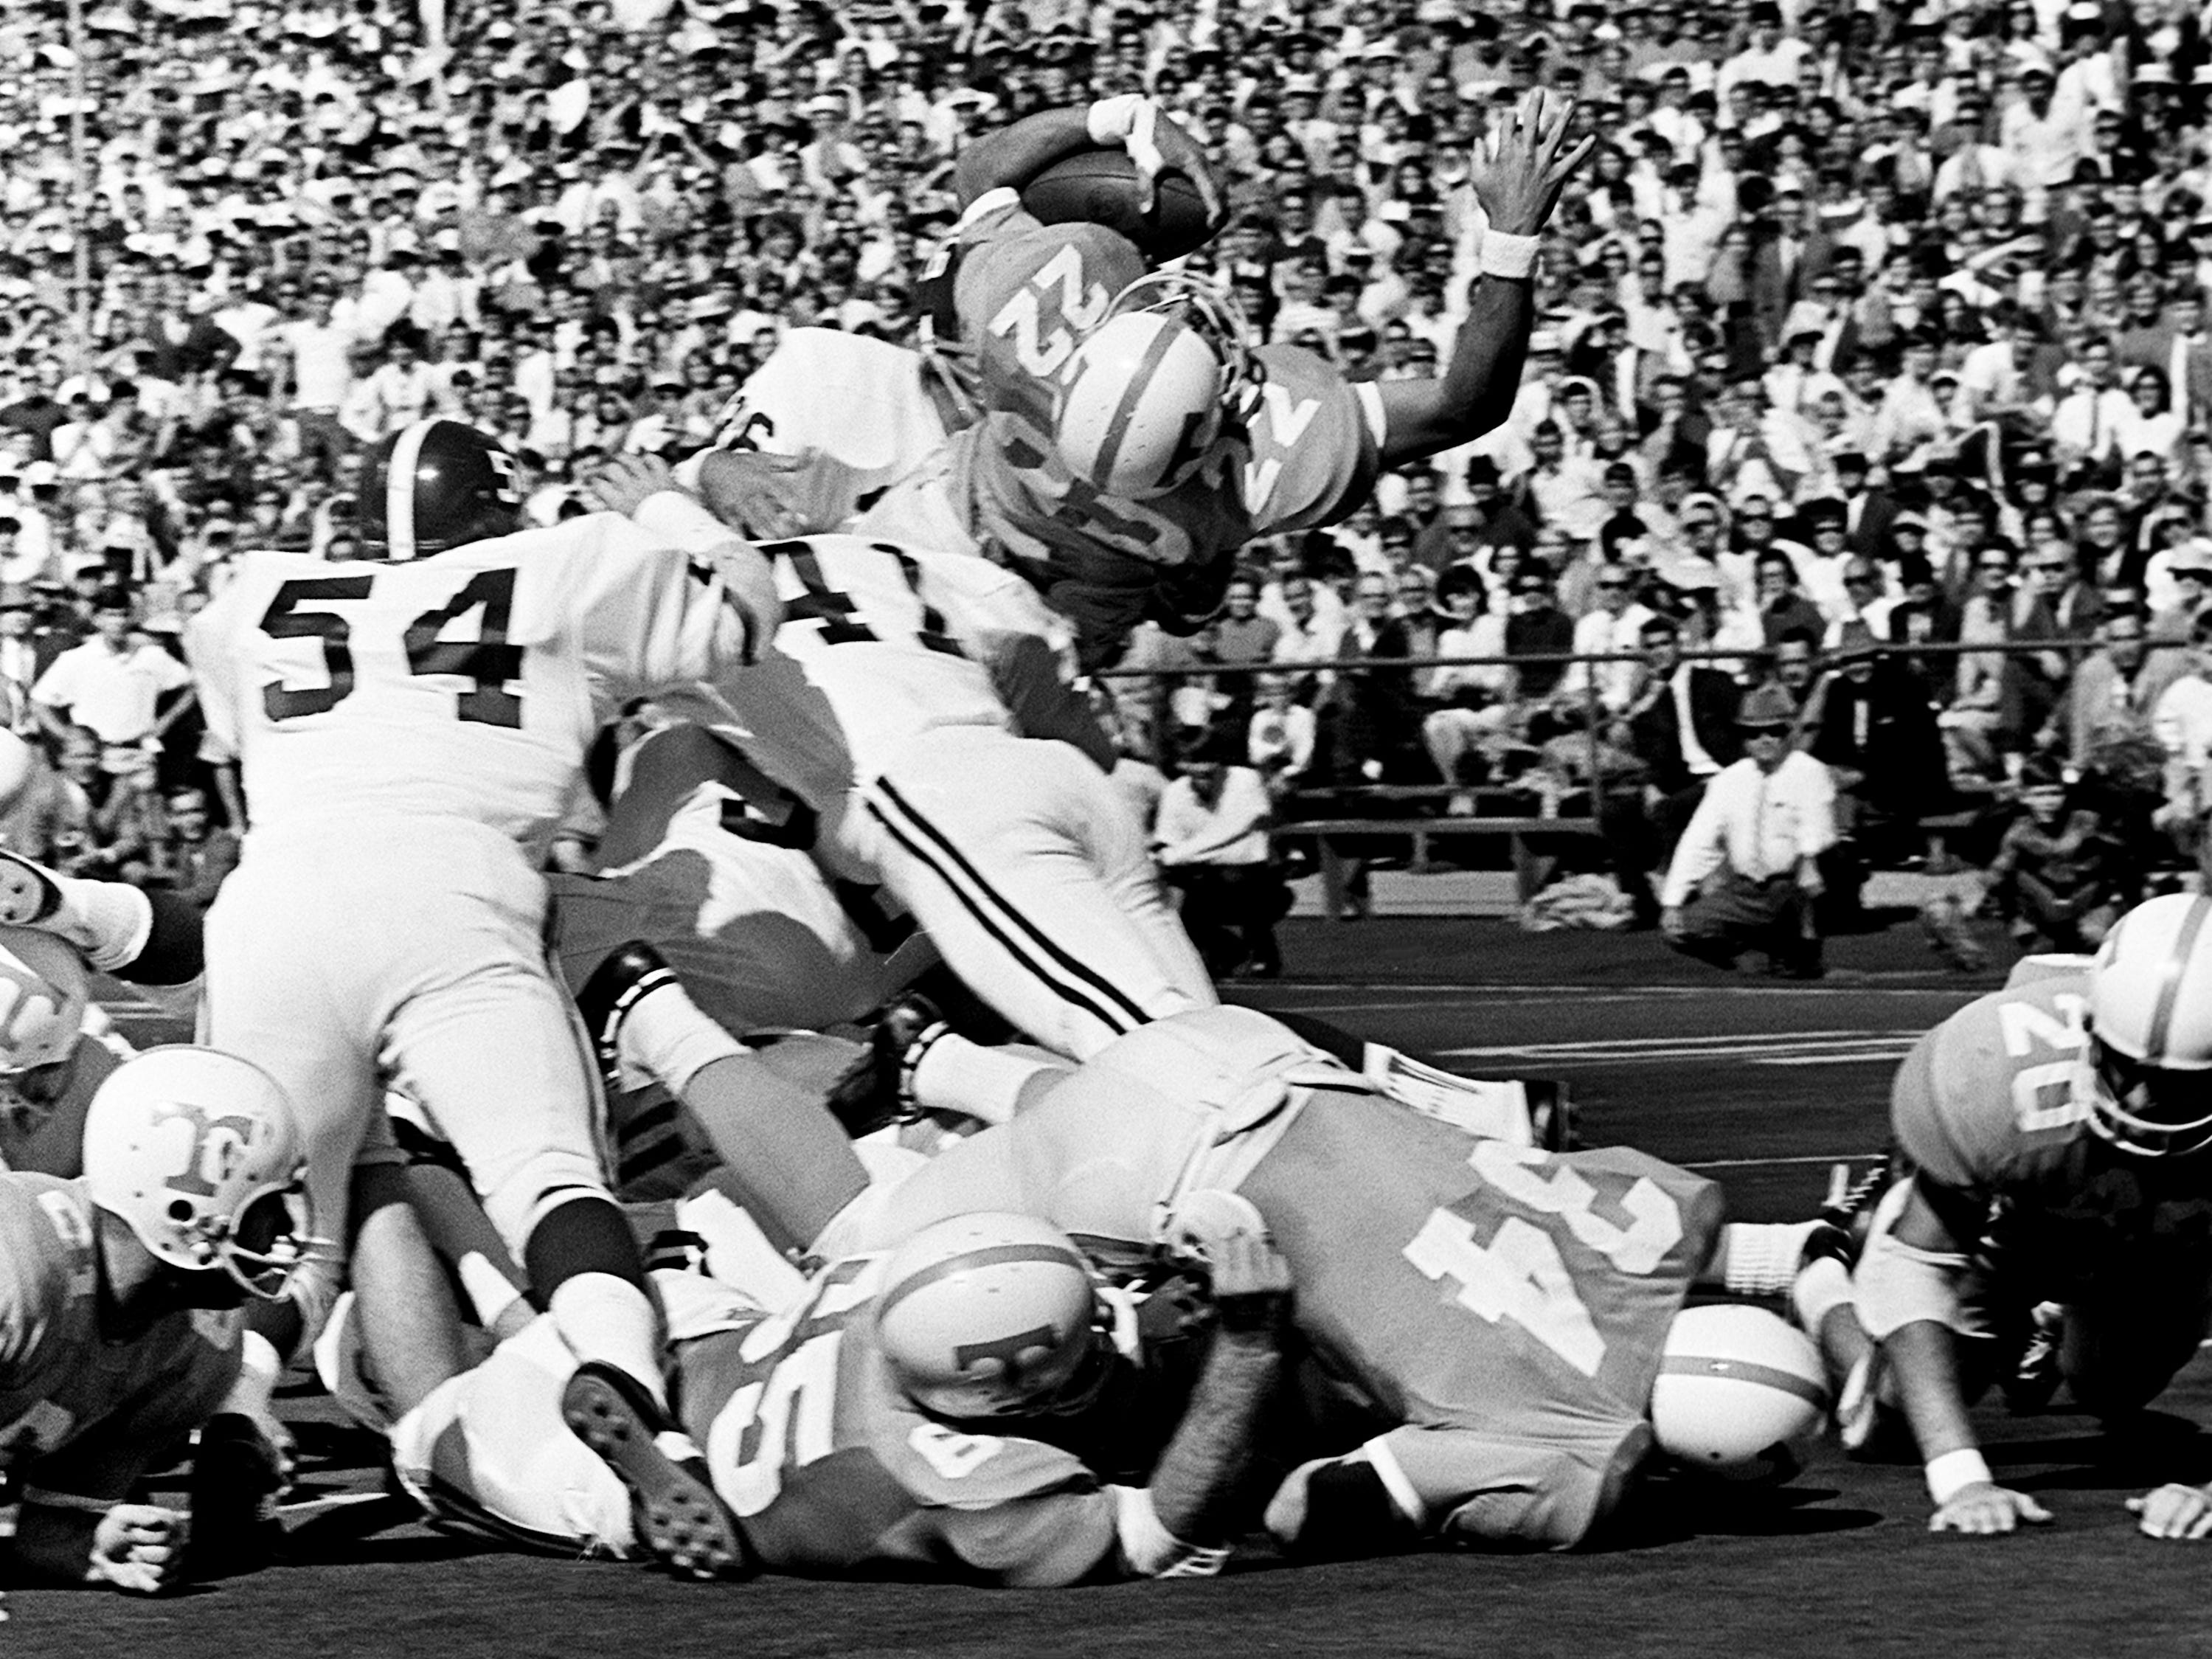 Tennessee senior back Richmond Flowers (22) dives over the goal line from the one-yard line for the only touchdown of the game for the Vols against Alabama. Flowers played his last game against his home state school by picking up 74 yards on 20 rushes and 37 more on five passes at Neyland Stadium on Oct. 19, 1968.